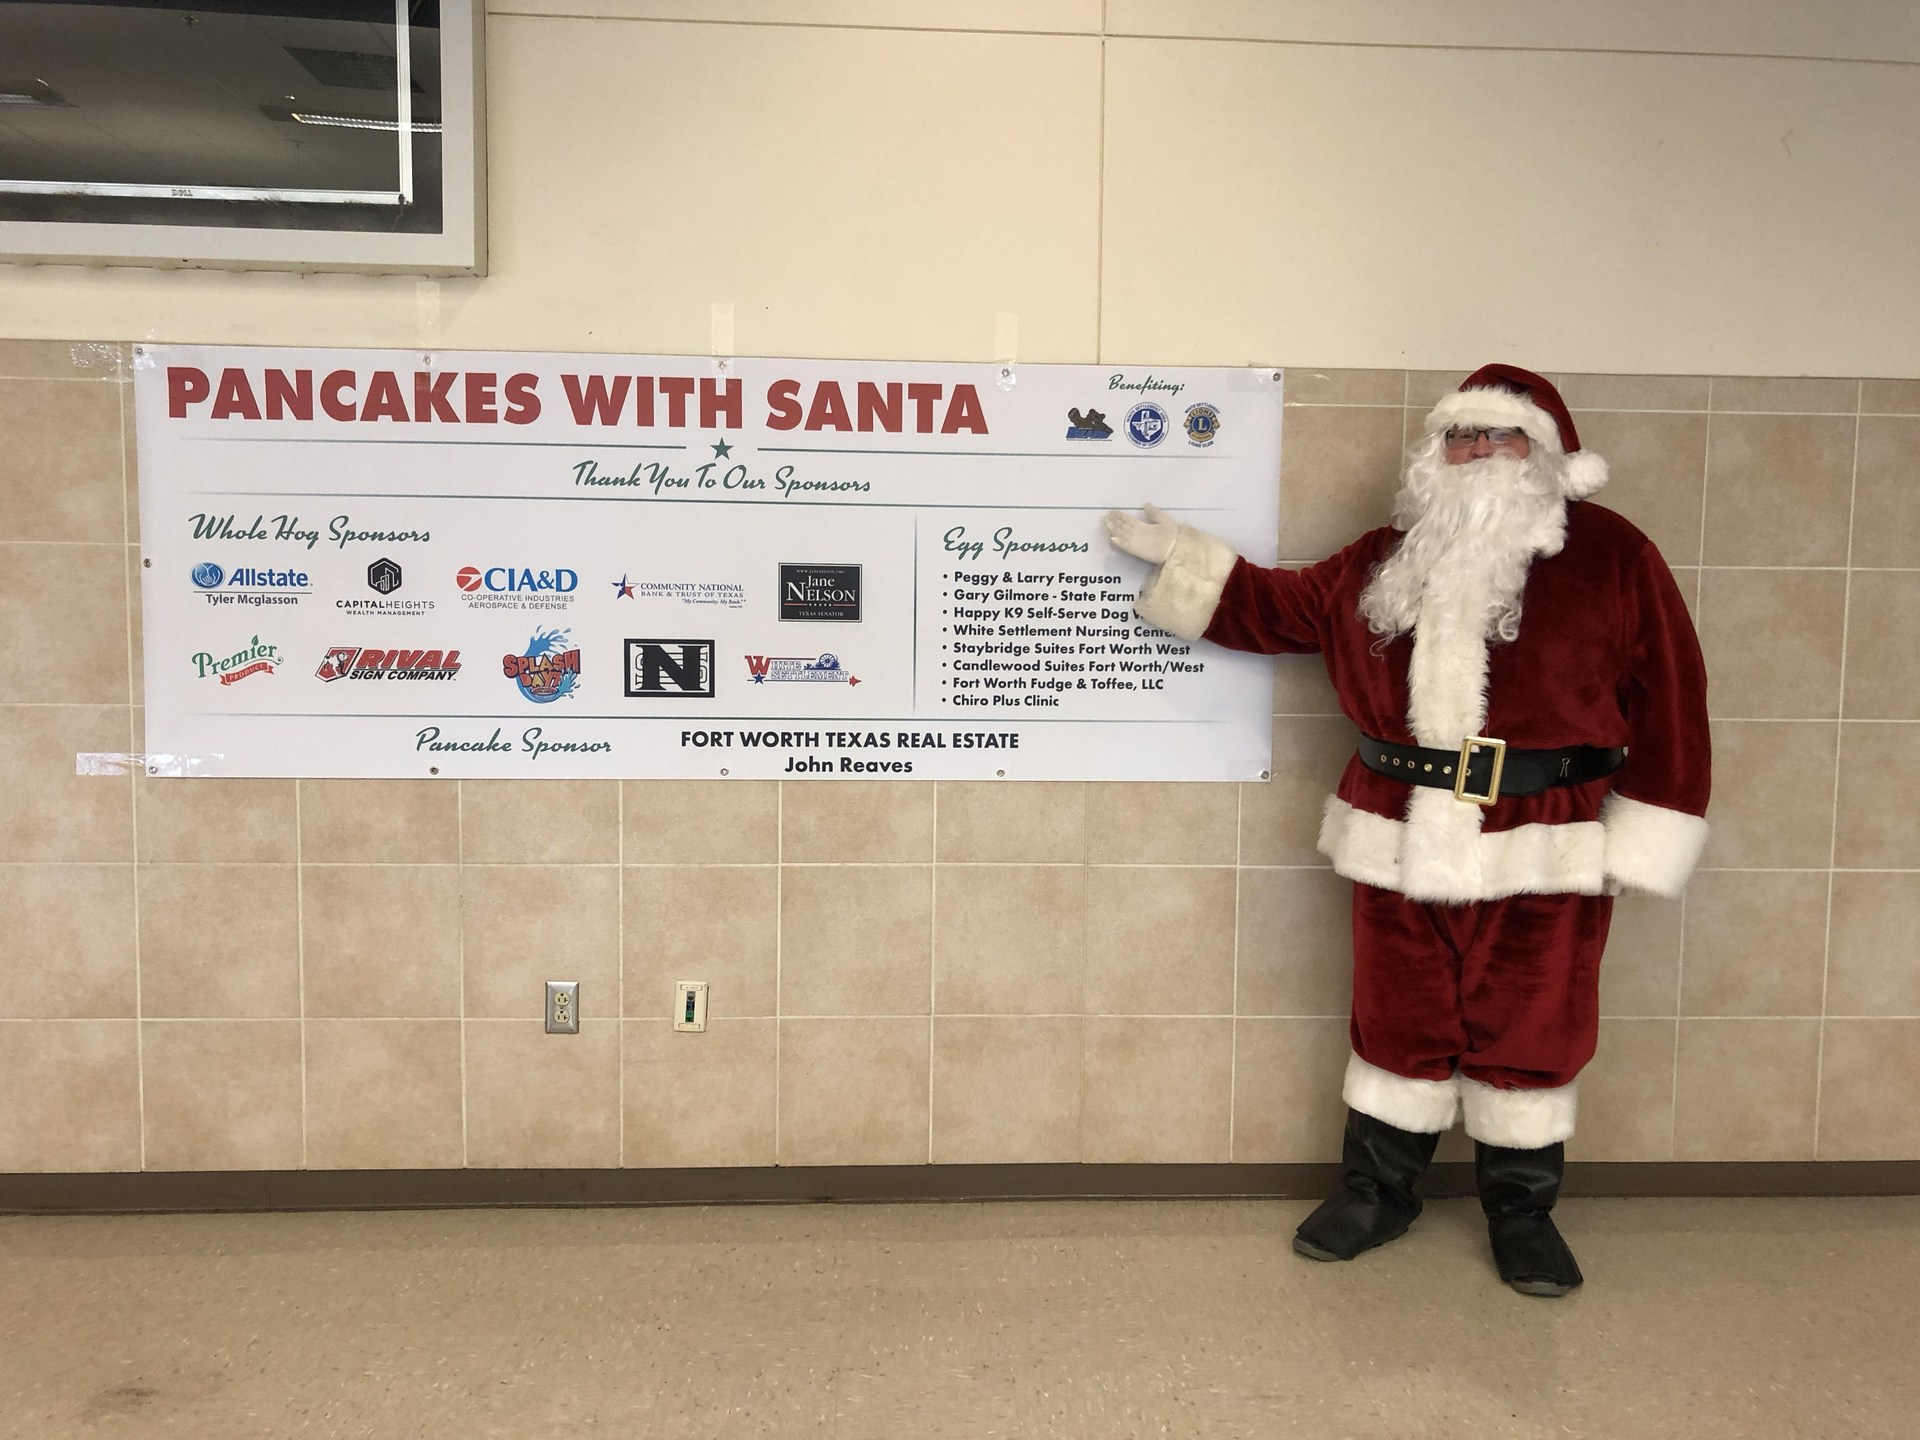 Thanks to our Pancakes with Santa sponsors!